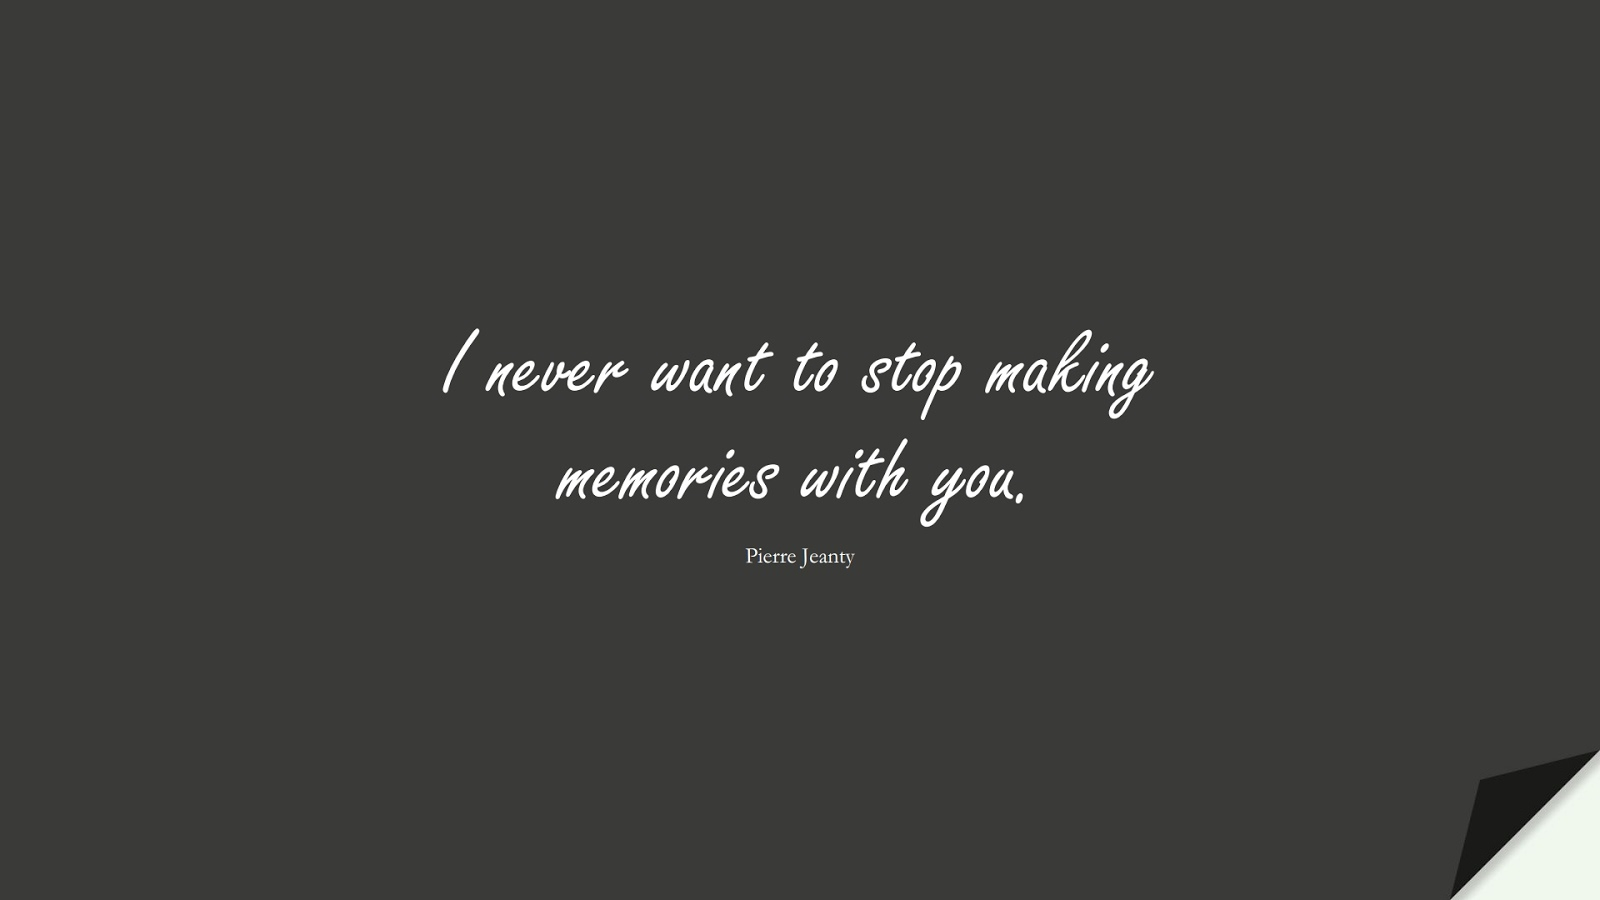 I never want to stop making memories with you. (Pierre Jeanty);  #LoveQuotes